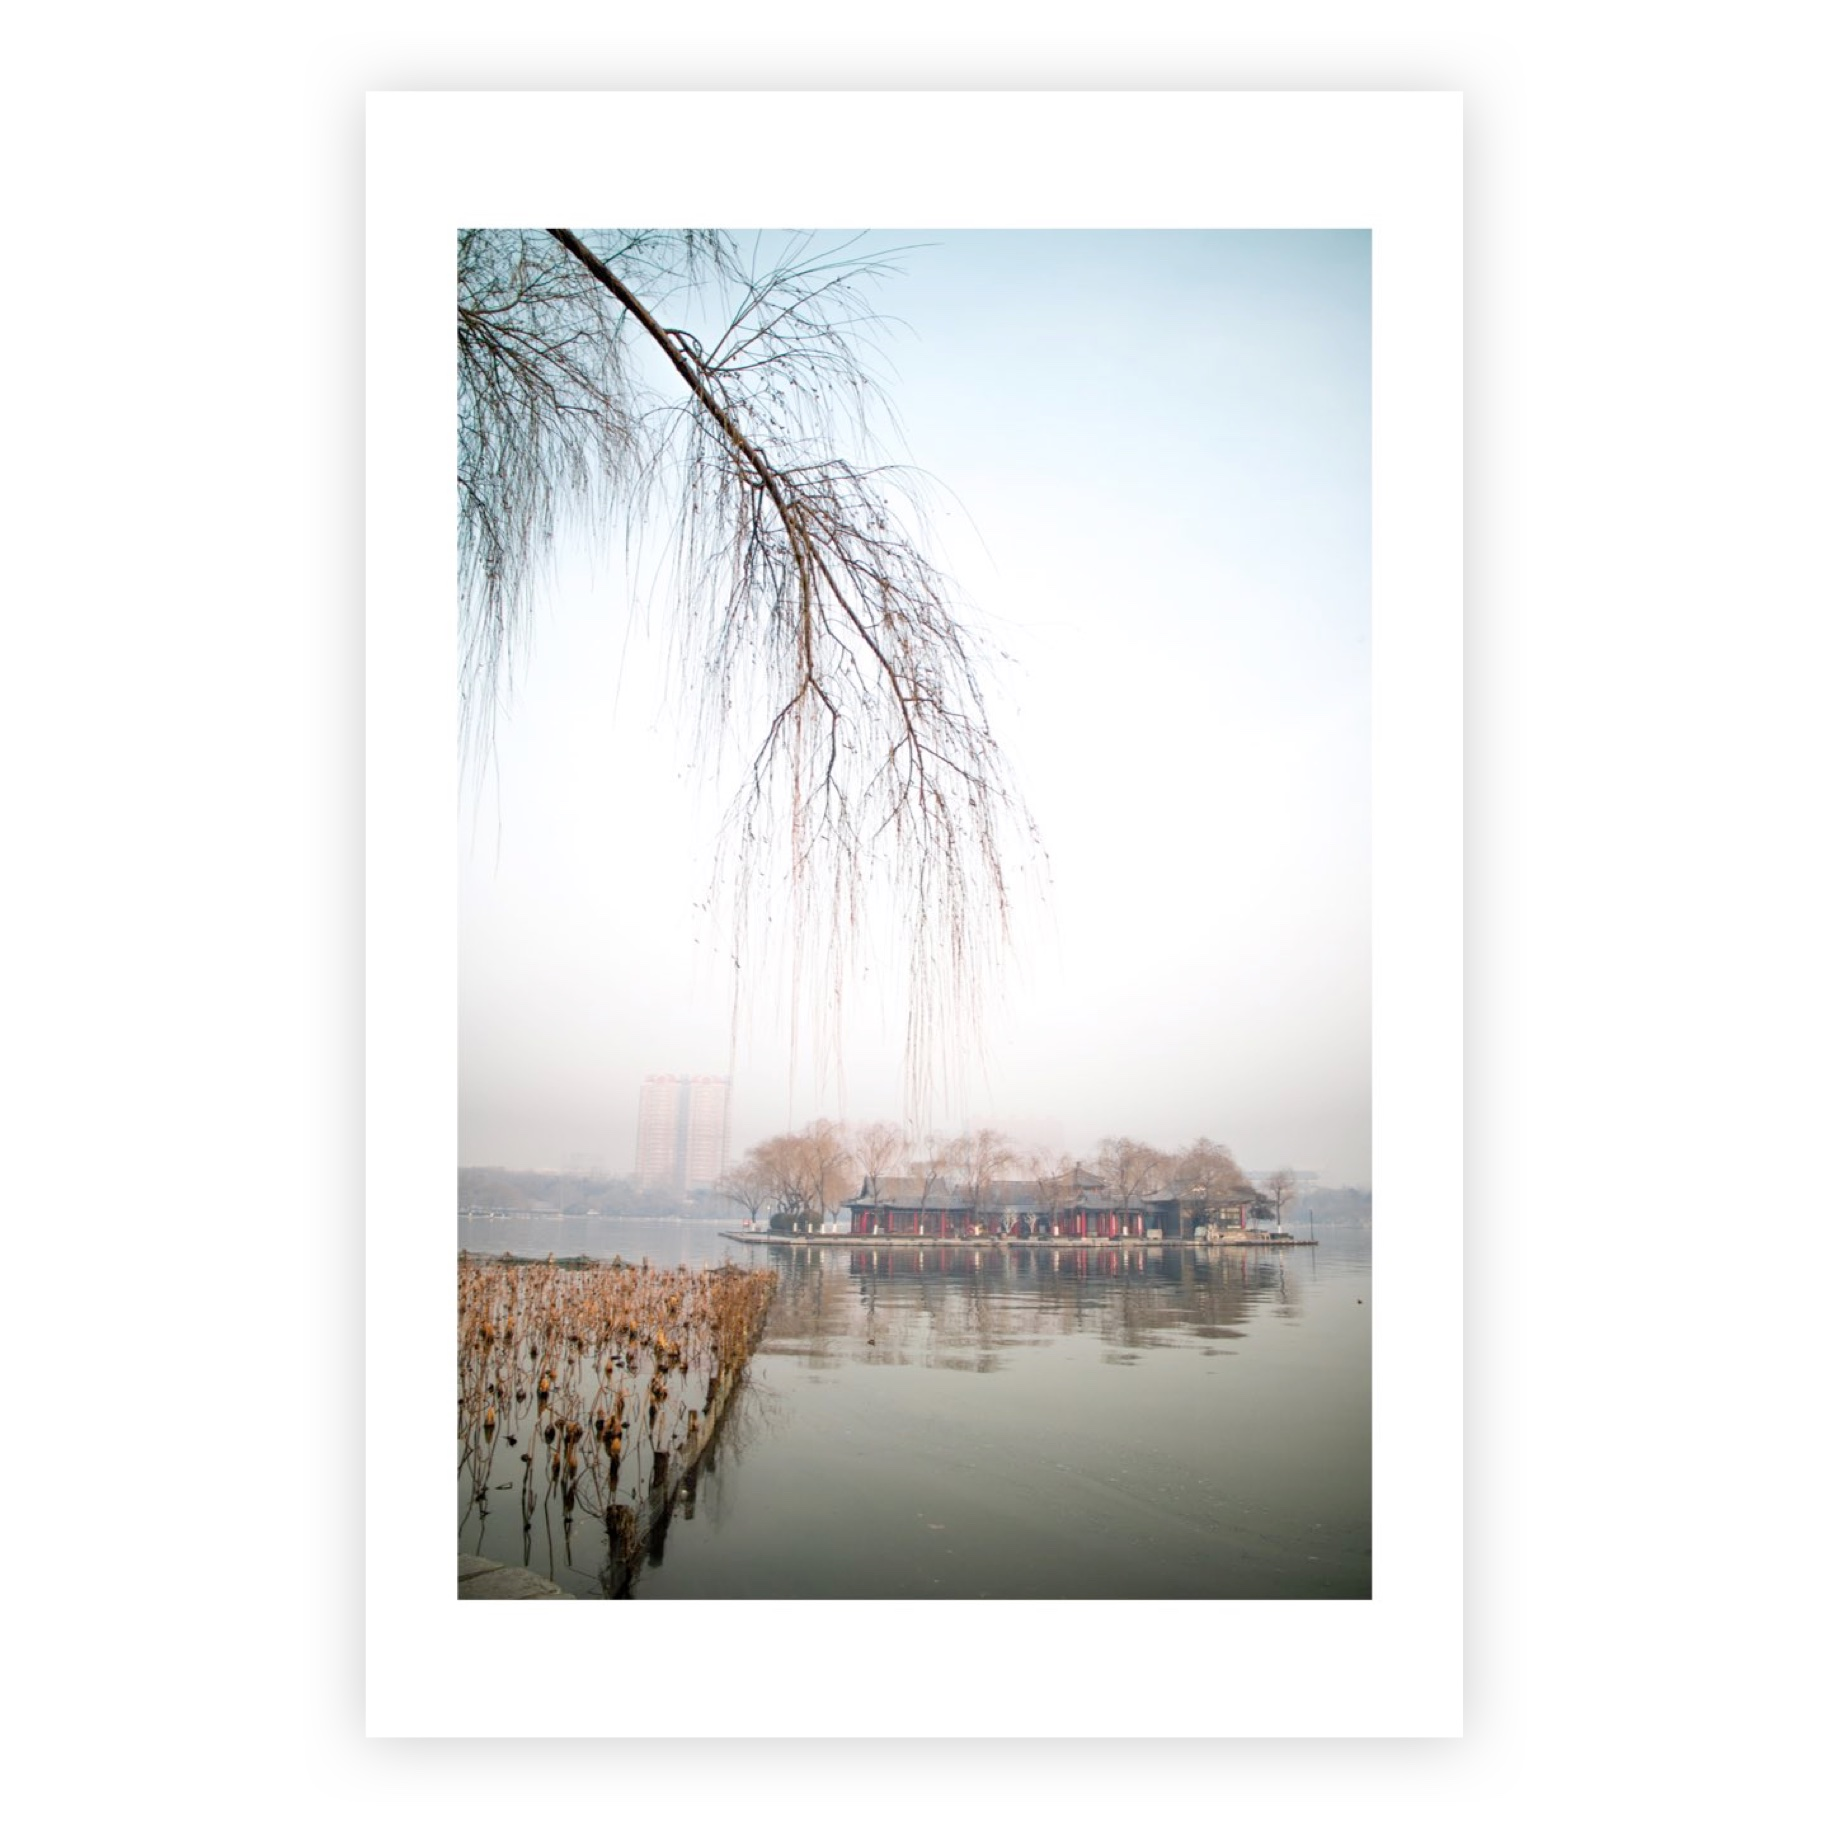 DAMING LAKE LMITED EDITION PRINT